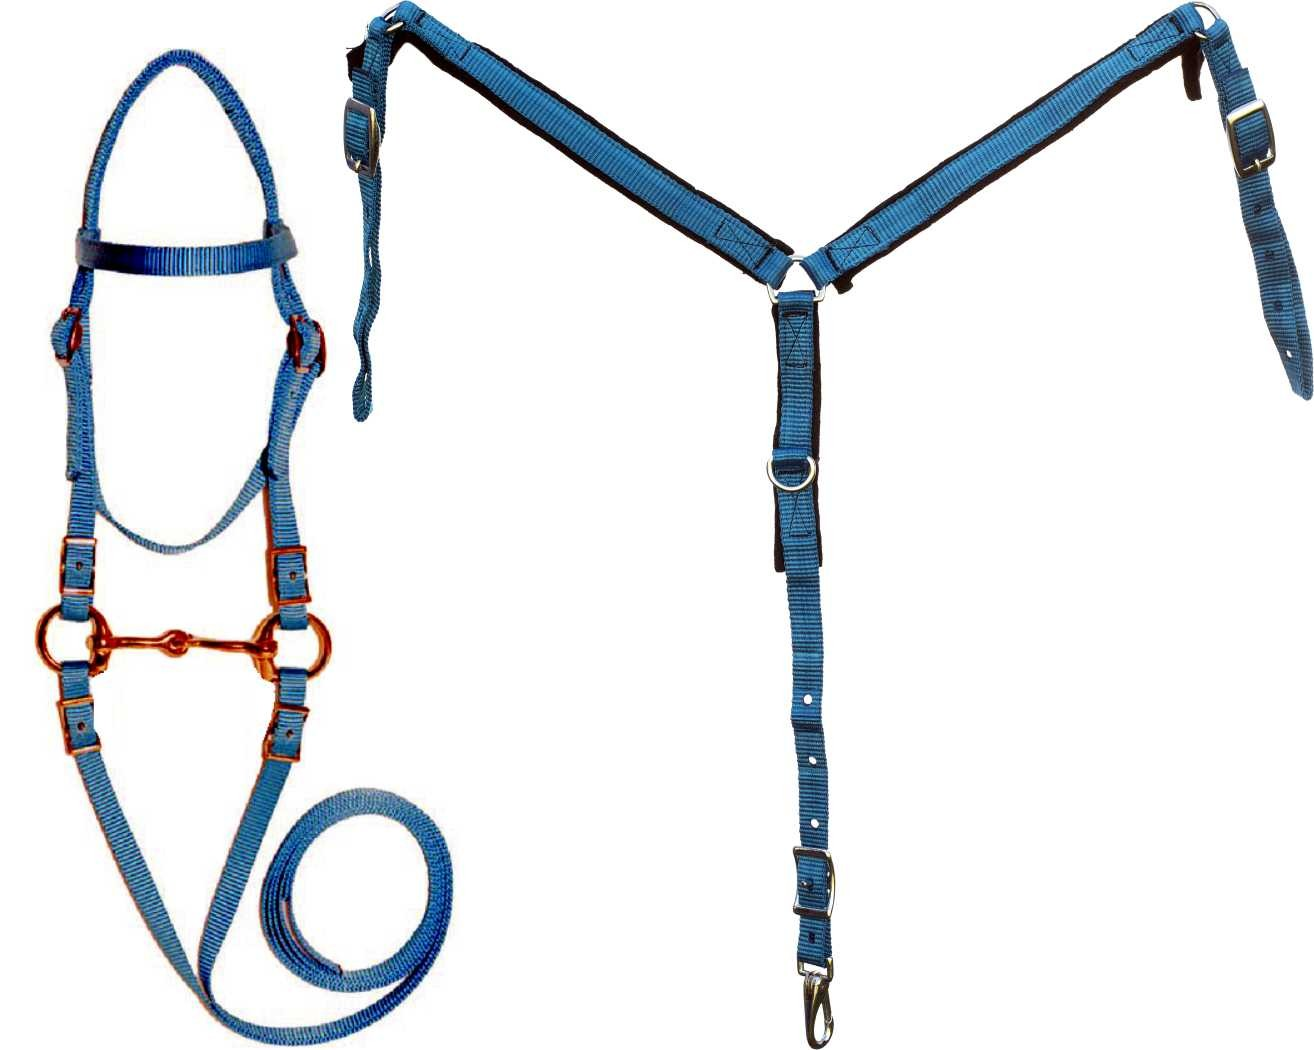 Mini Nylon Bridle, Reins and Breastcollar set